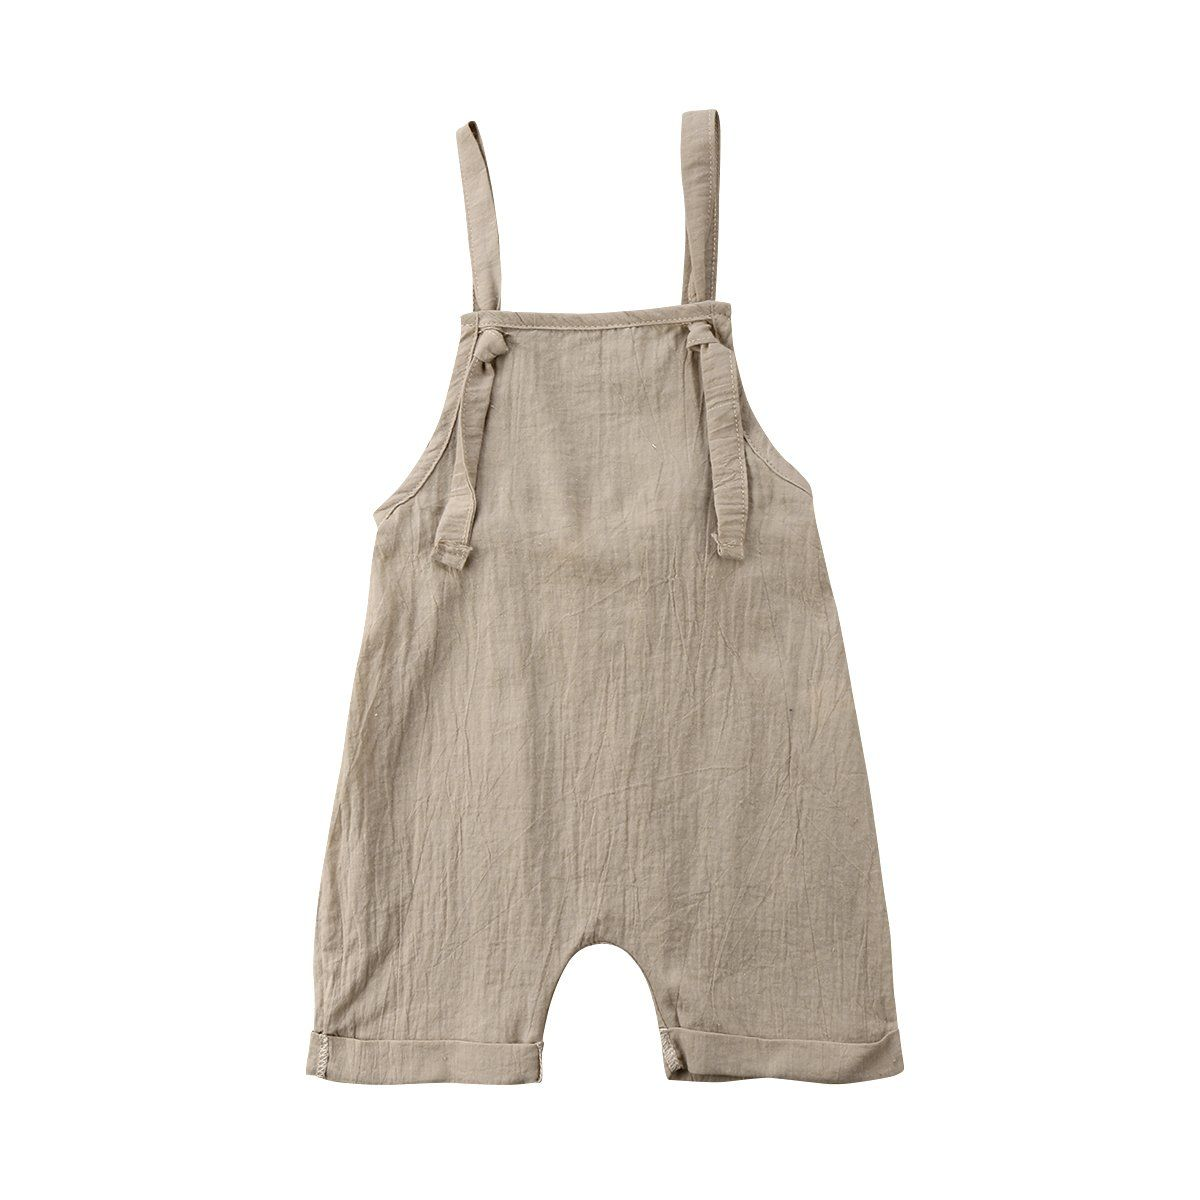 UK Toddler Baby Girl Boy Denim Bib Pants Overalls Romper Clothes Casual Outfits